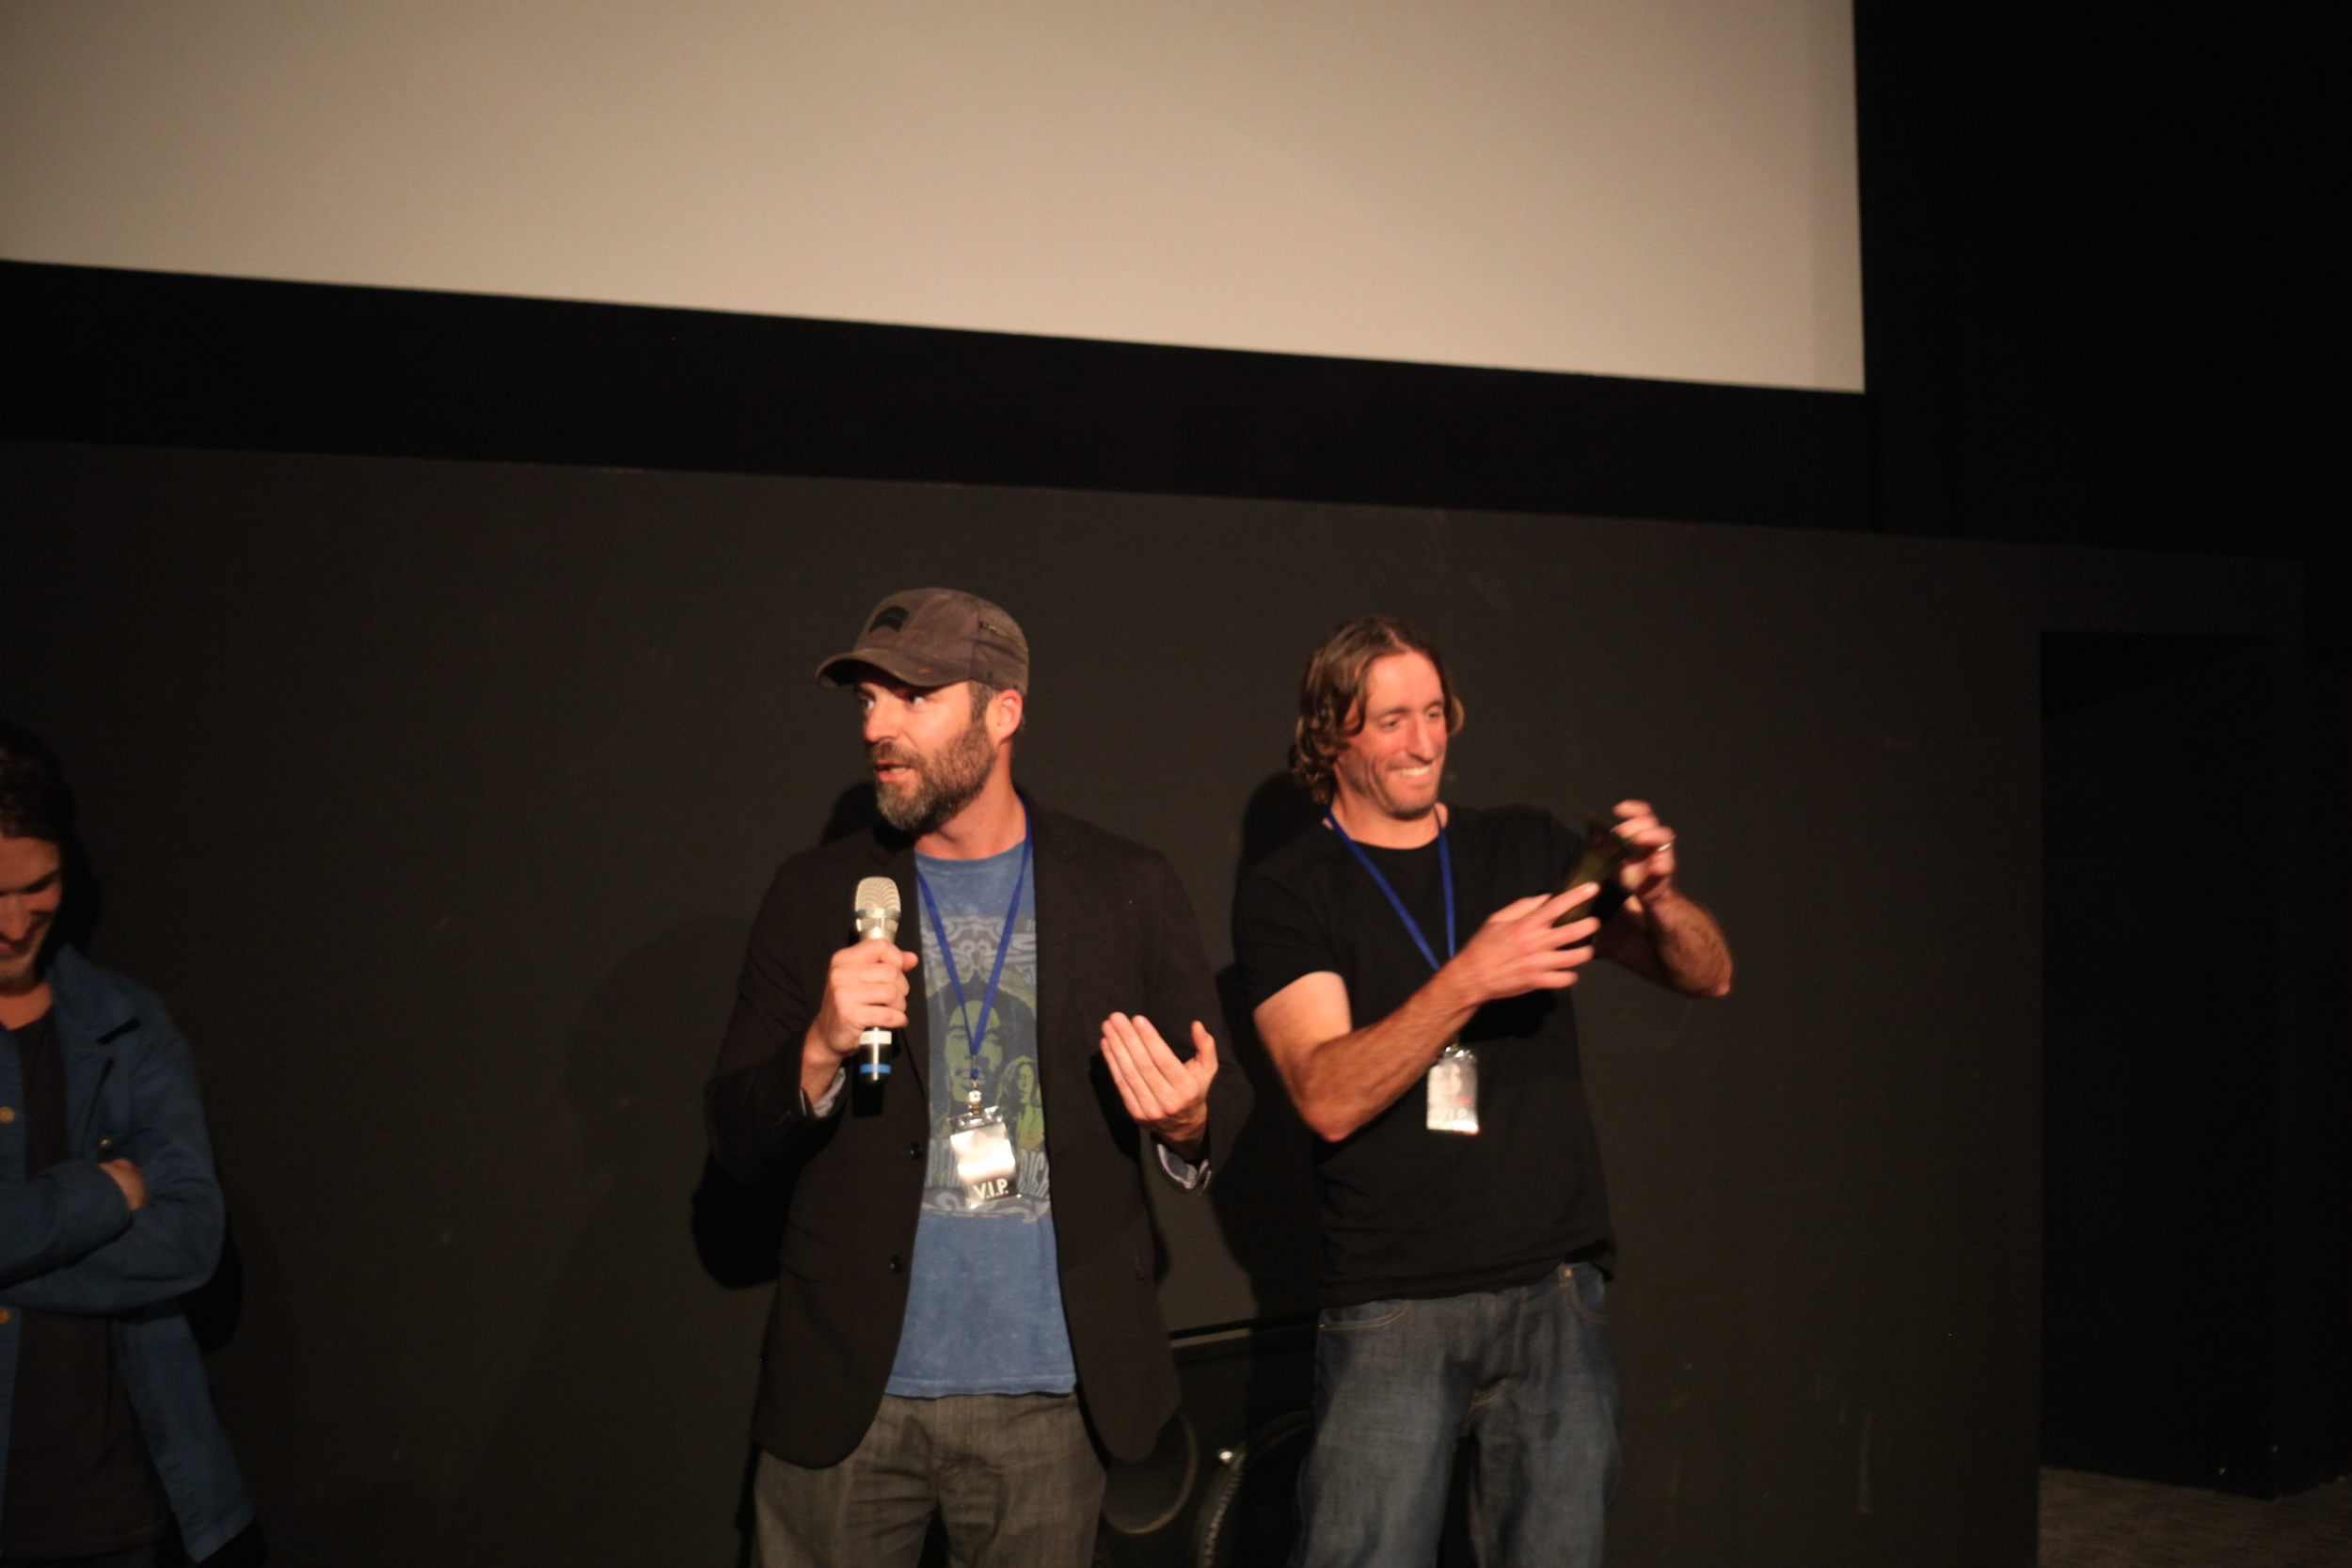 Kevin and Michael McCarthy the creative team behind FURY: THE TALES OF RONAN PIERCE - Independent Spirit Award at Fantastic Planet Film Festival.